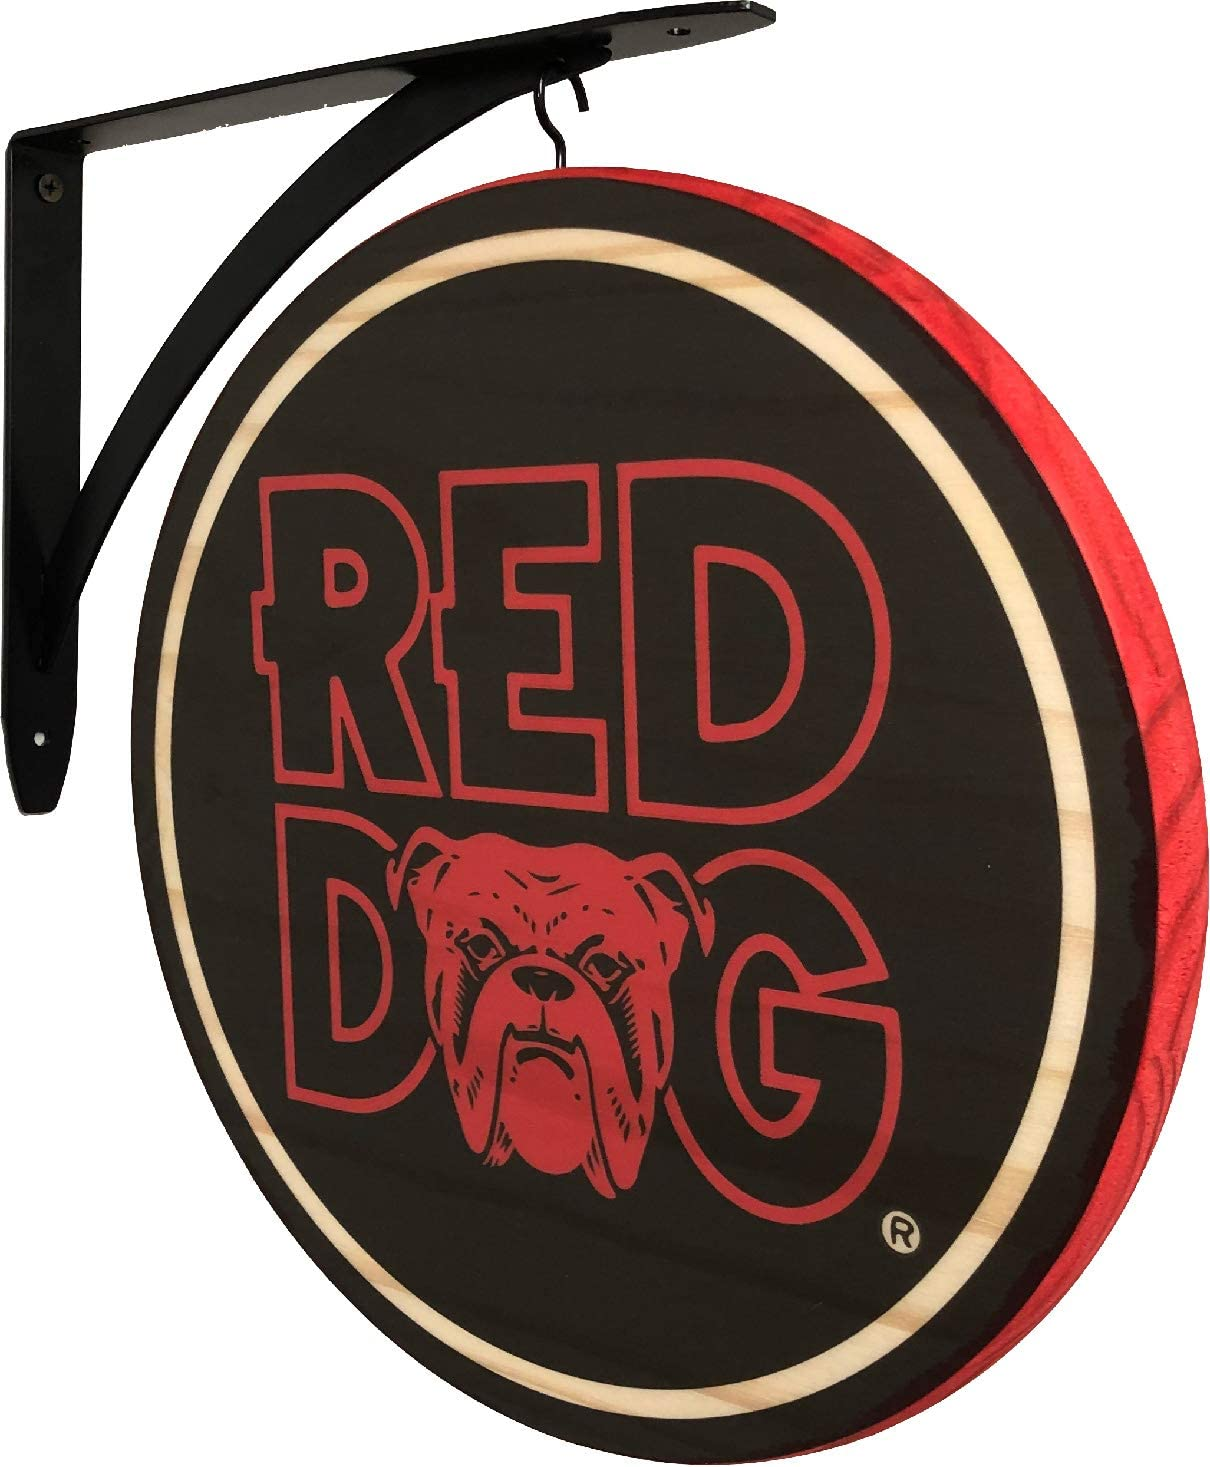 Amazon Com Red Dog Beer 2 Sided Pub Sign Home Kitchen